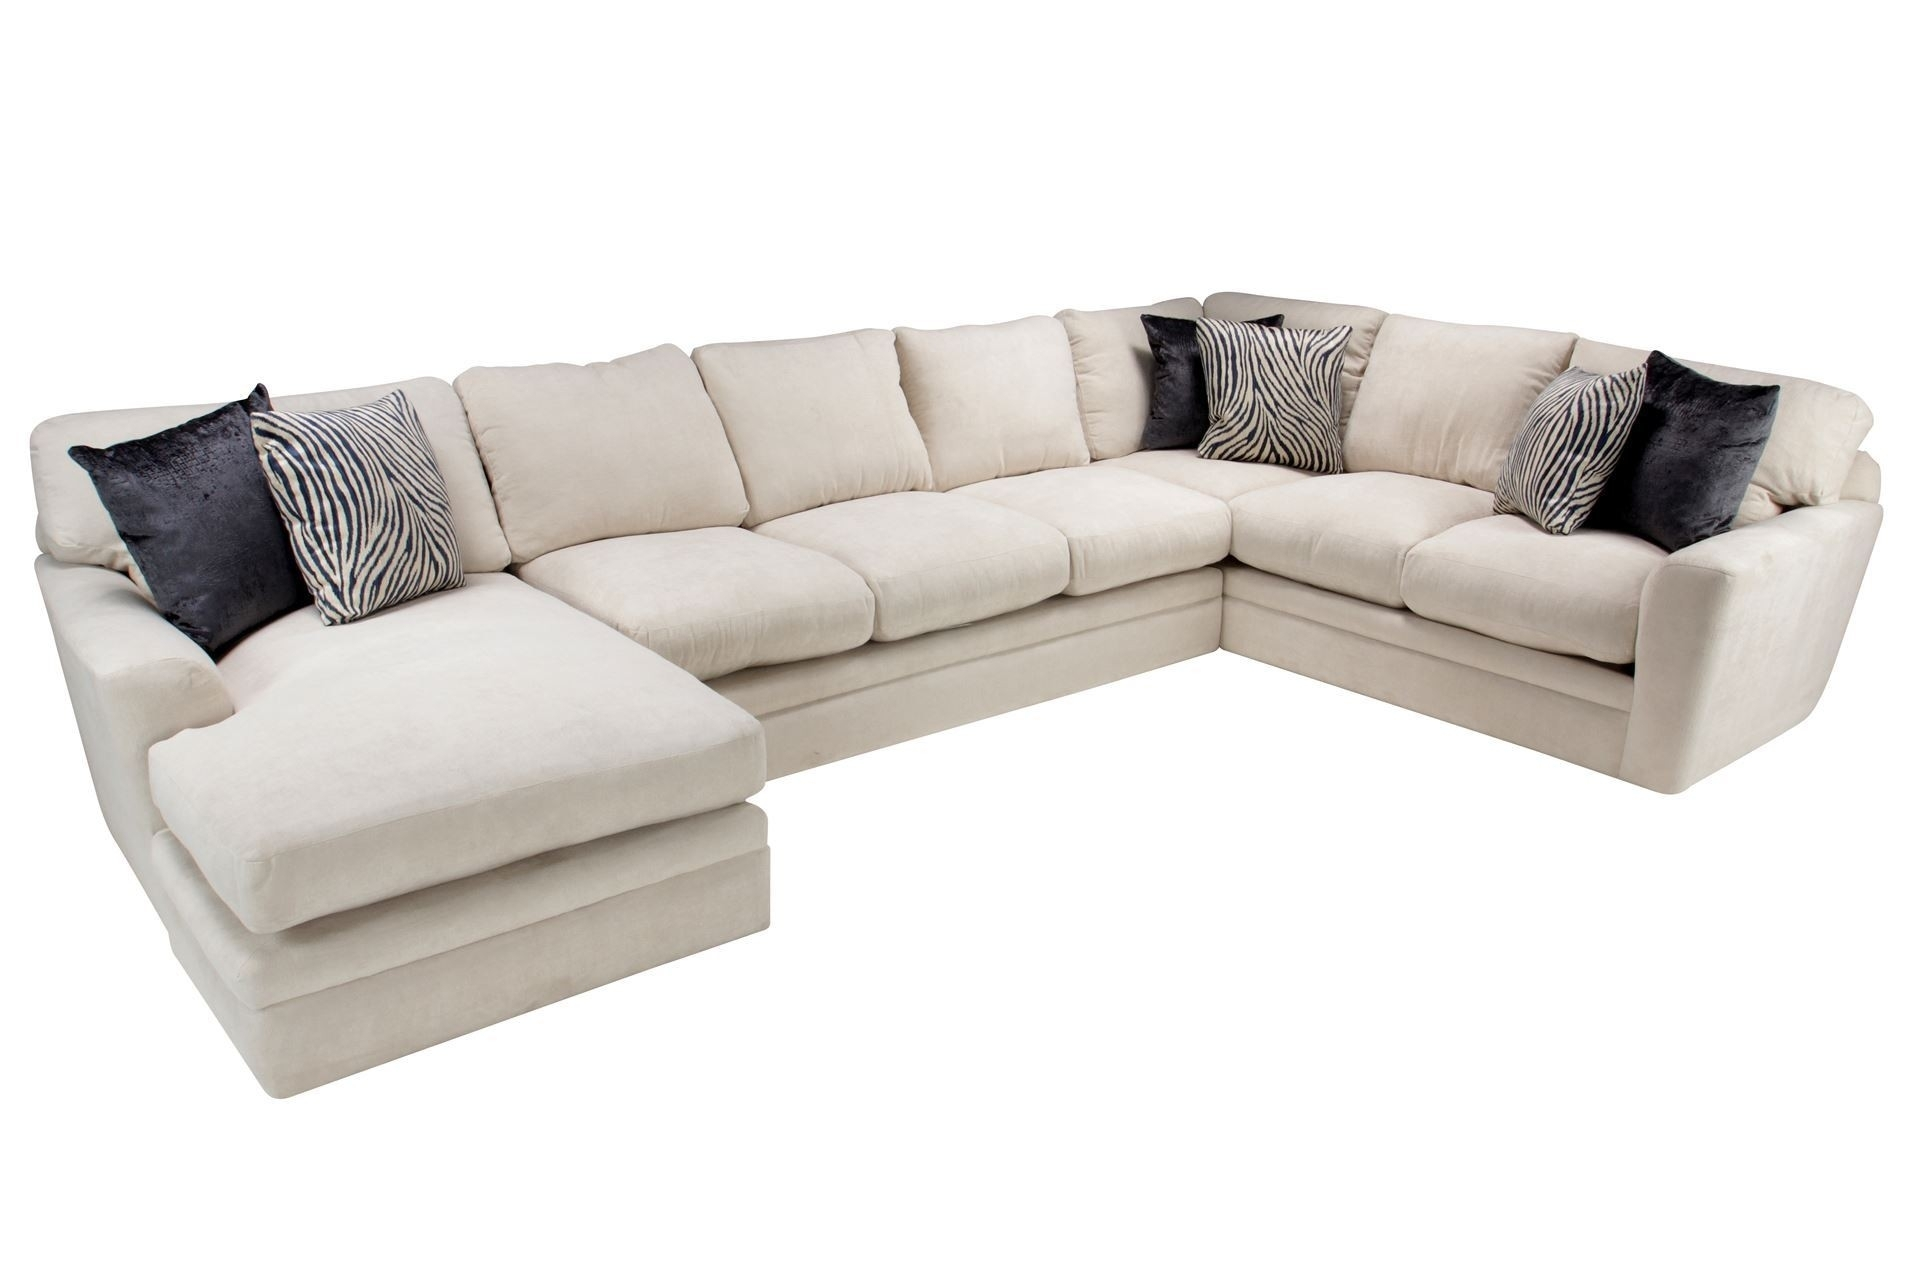 Living Spaces Sectional Sofas Kerri 2 Piece W Raf Chaise 107153 0 Within Kerri 2 Piece Sectionals With Laf Chaise (Image 20 of 25)